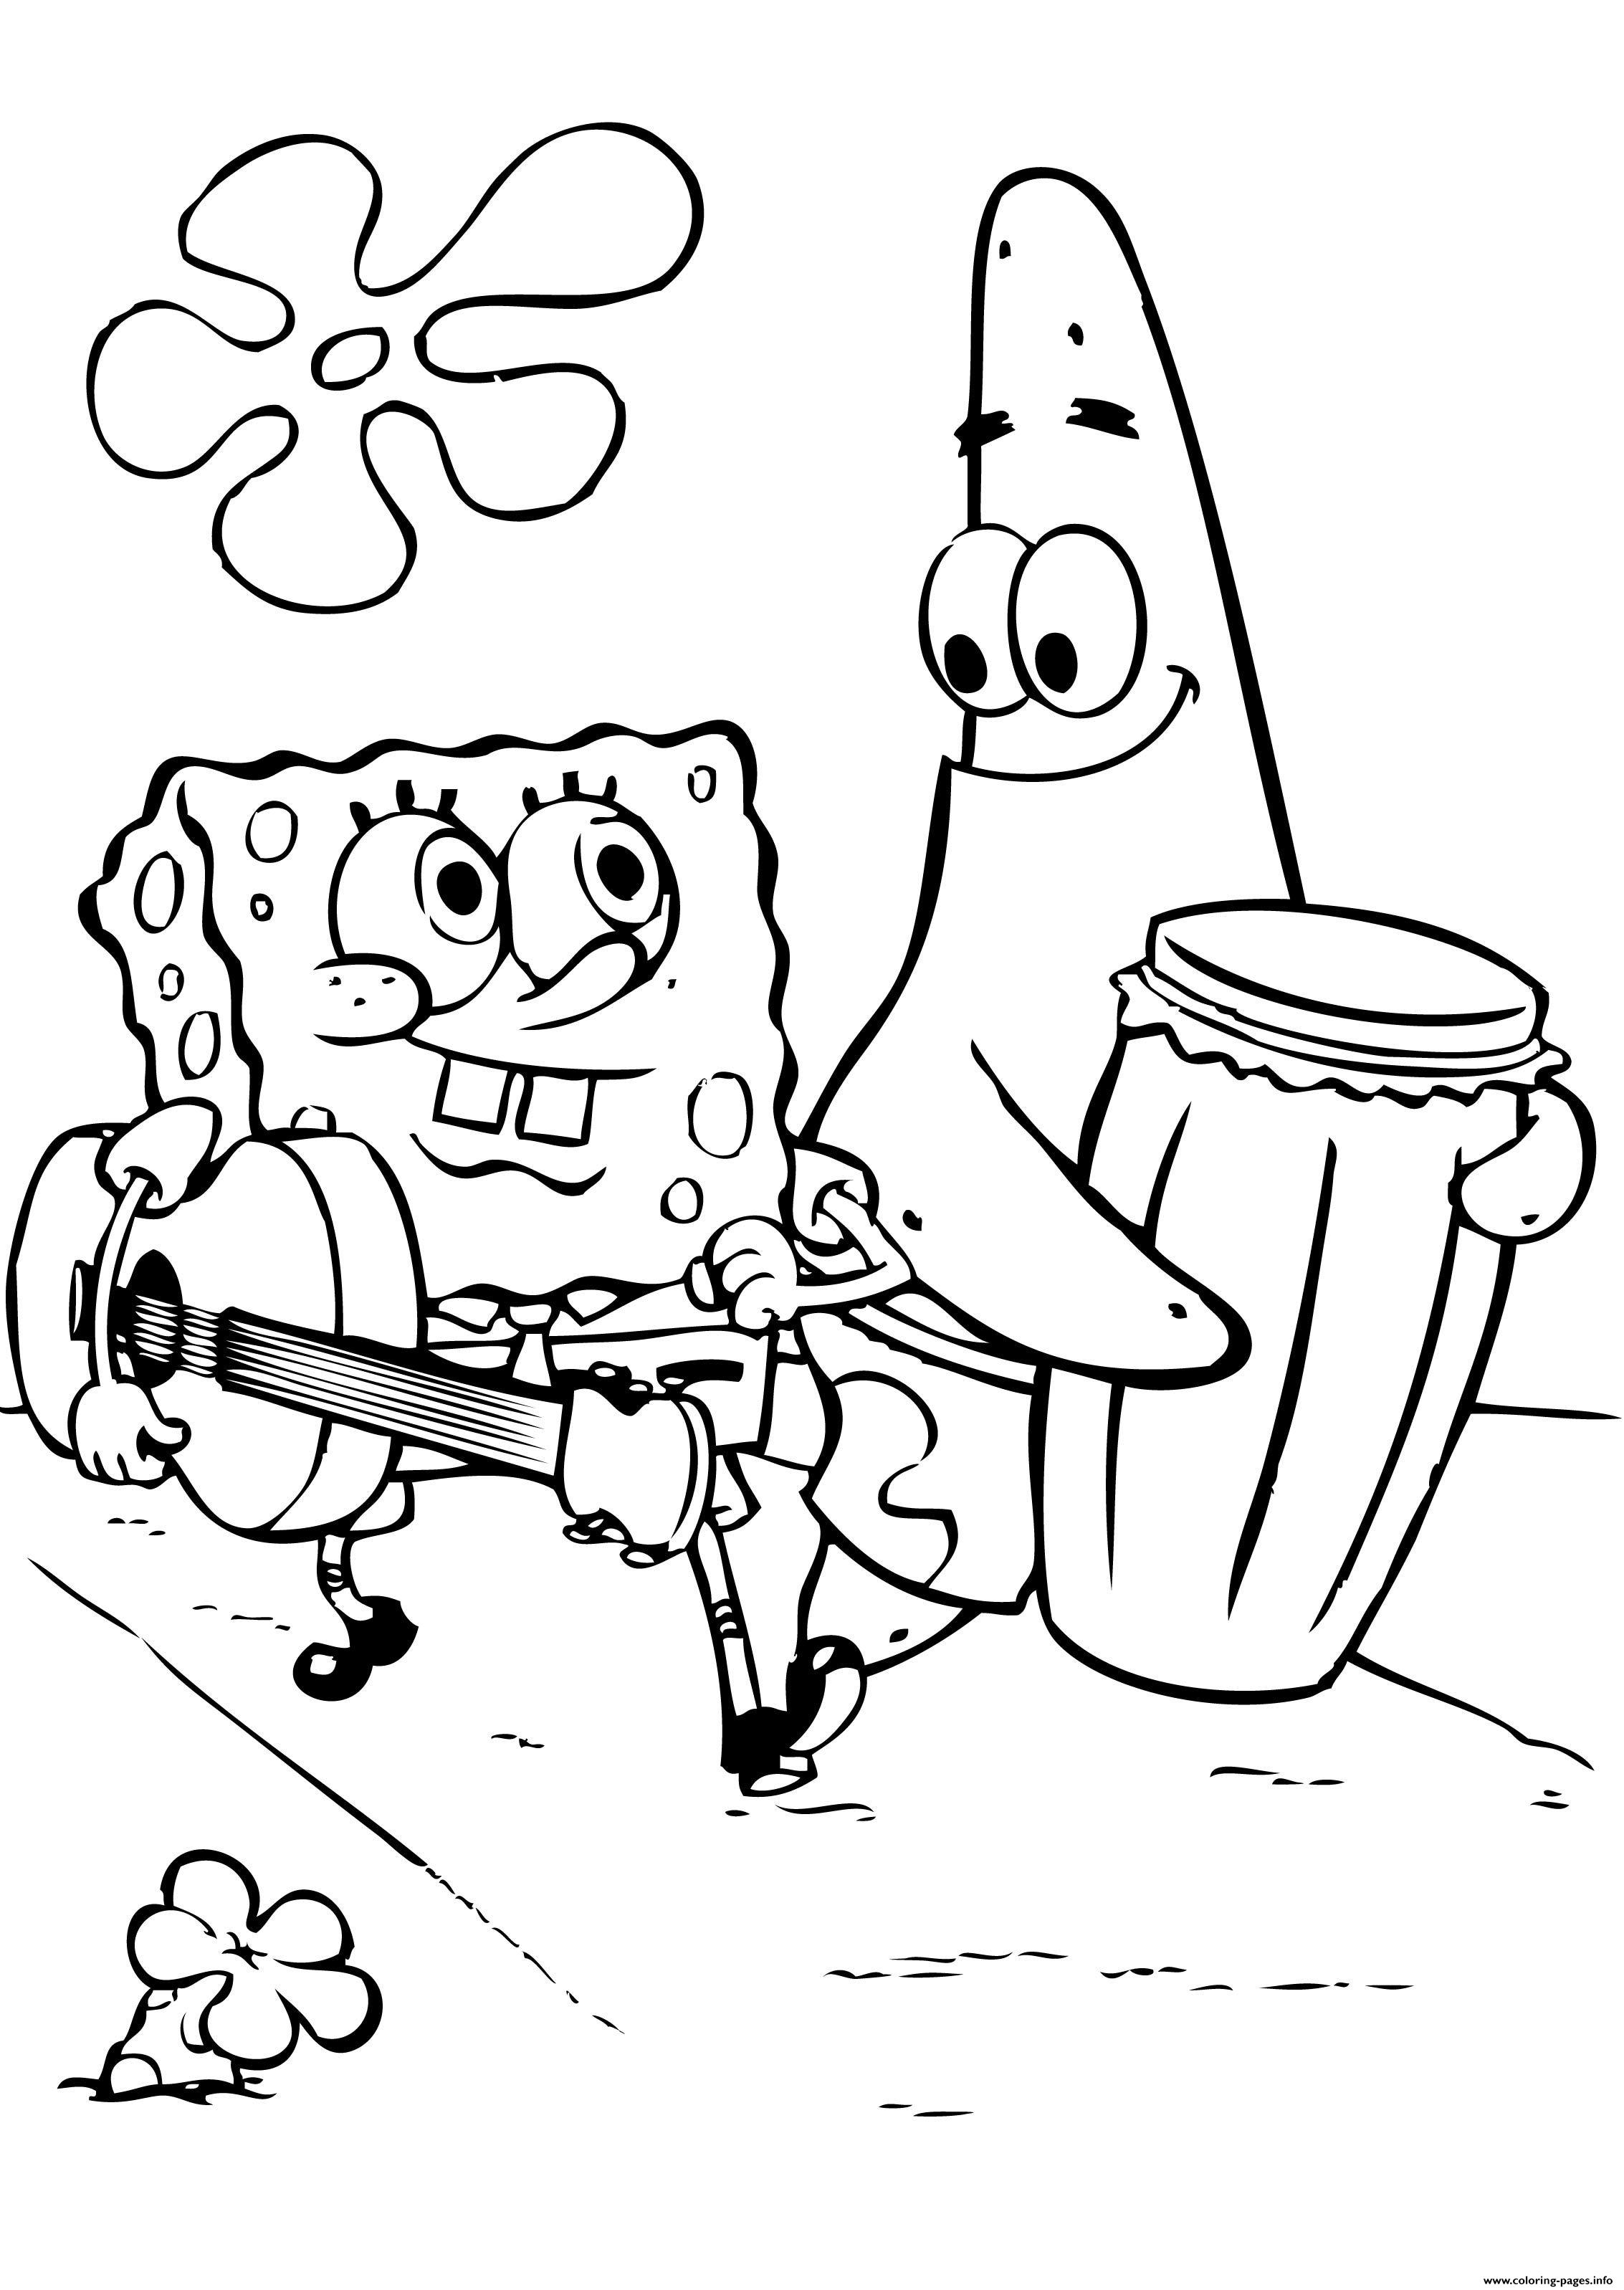 Spongebob And Patricks Play Music